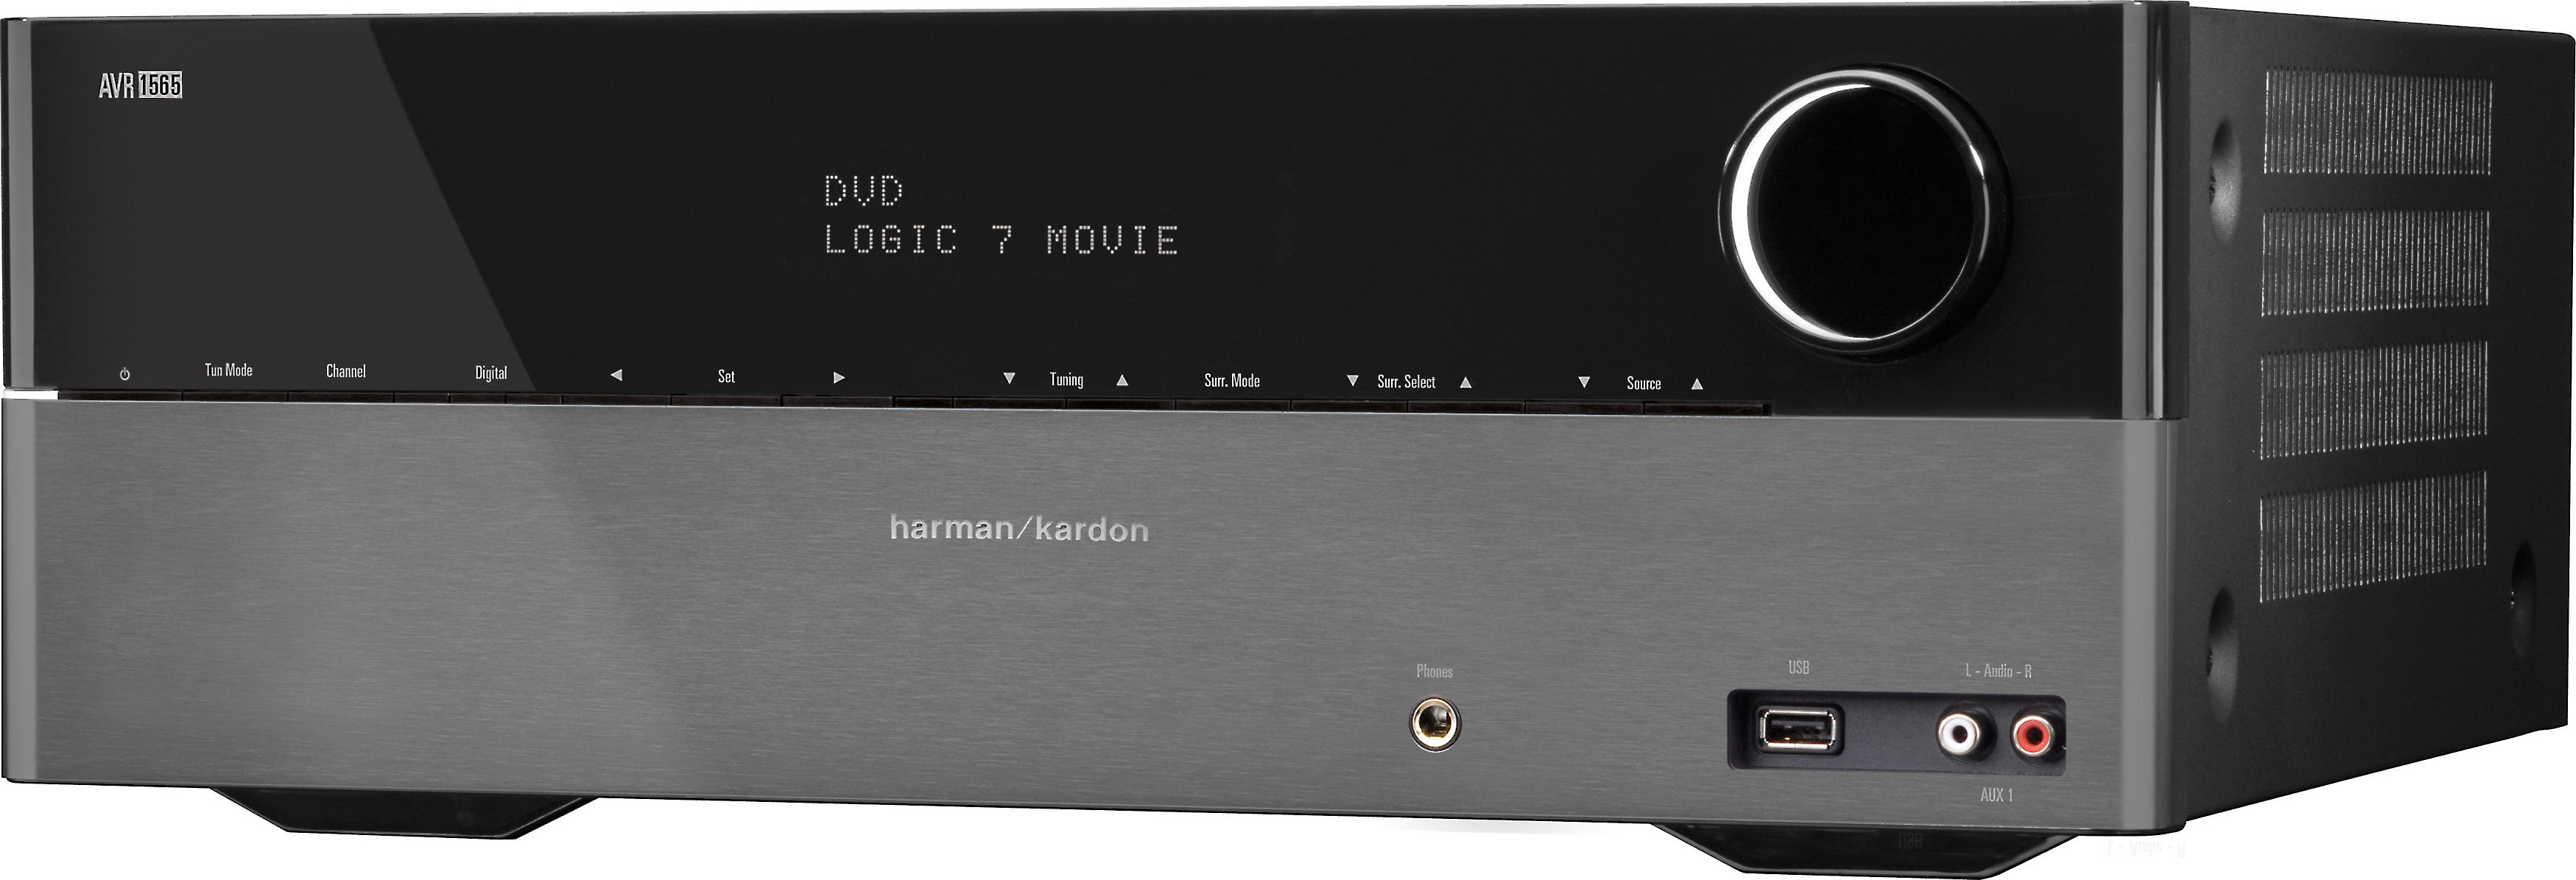 Harman Kardon AVR 1565 Home theater receiver with 3D-ready HDMI switching on